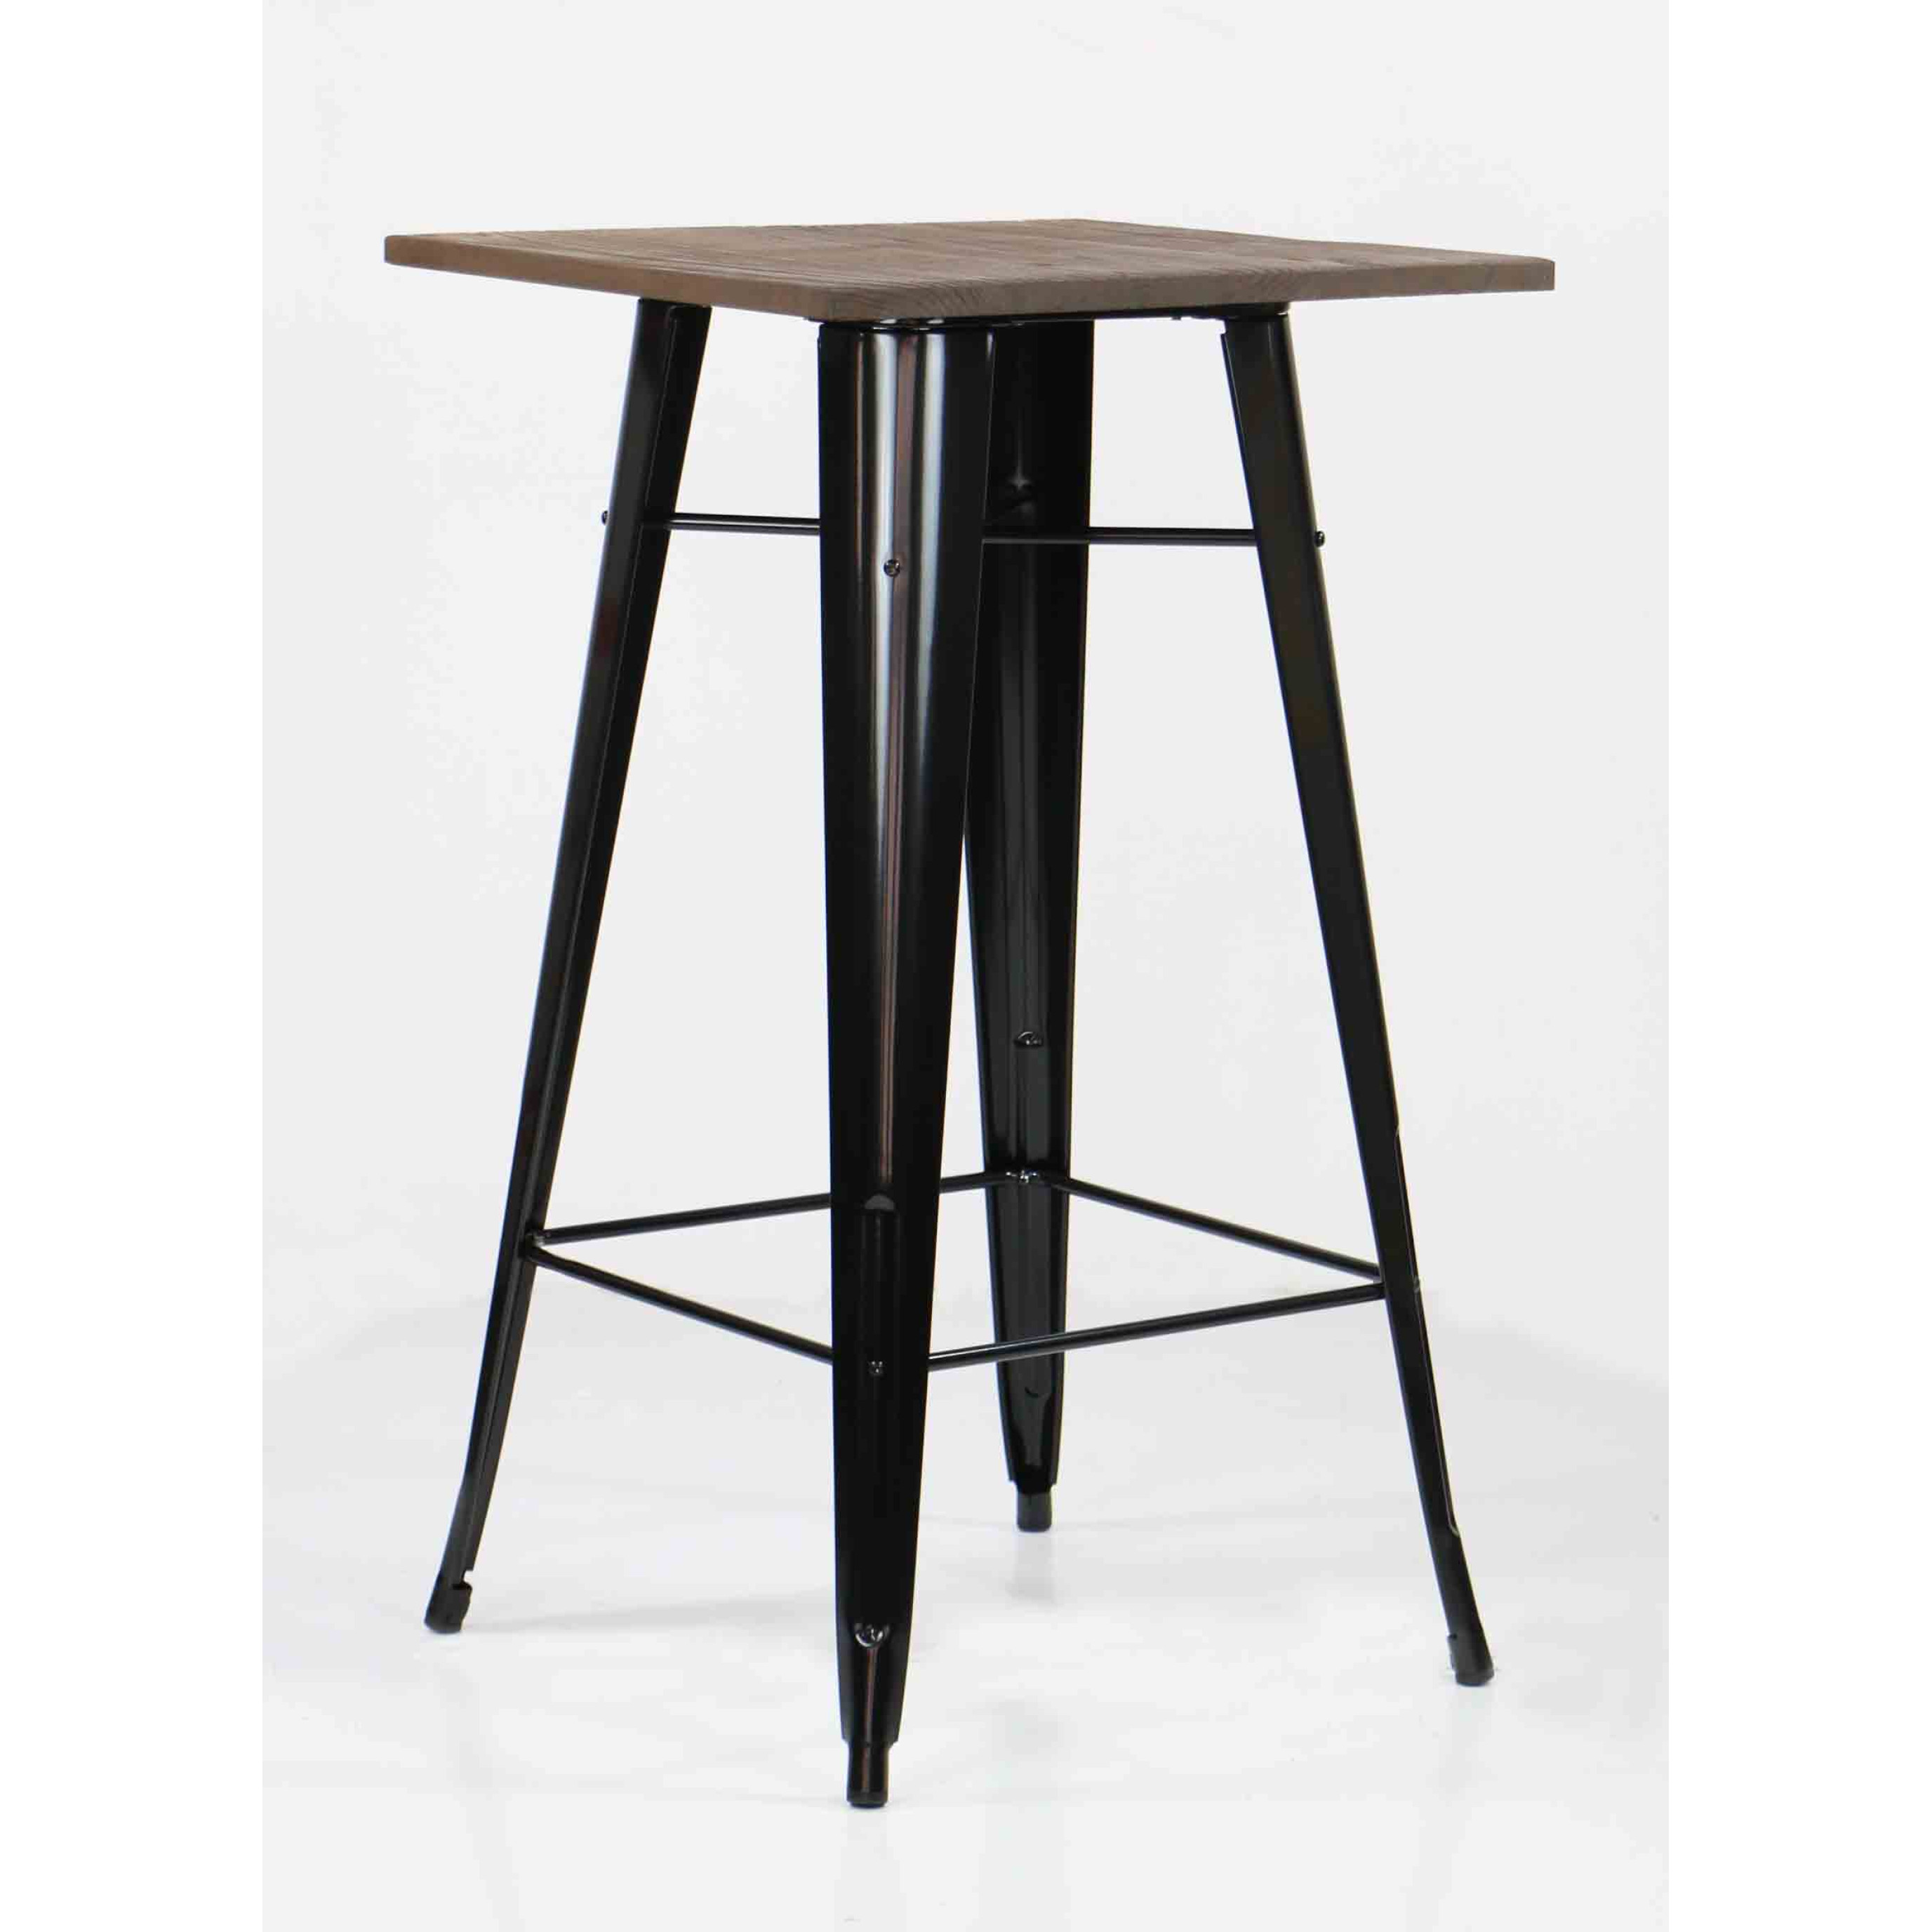 Loft Style Bar Table With Wood Top In Black 22 Customer Reviews